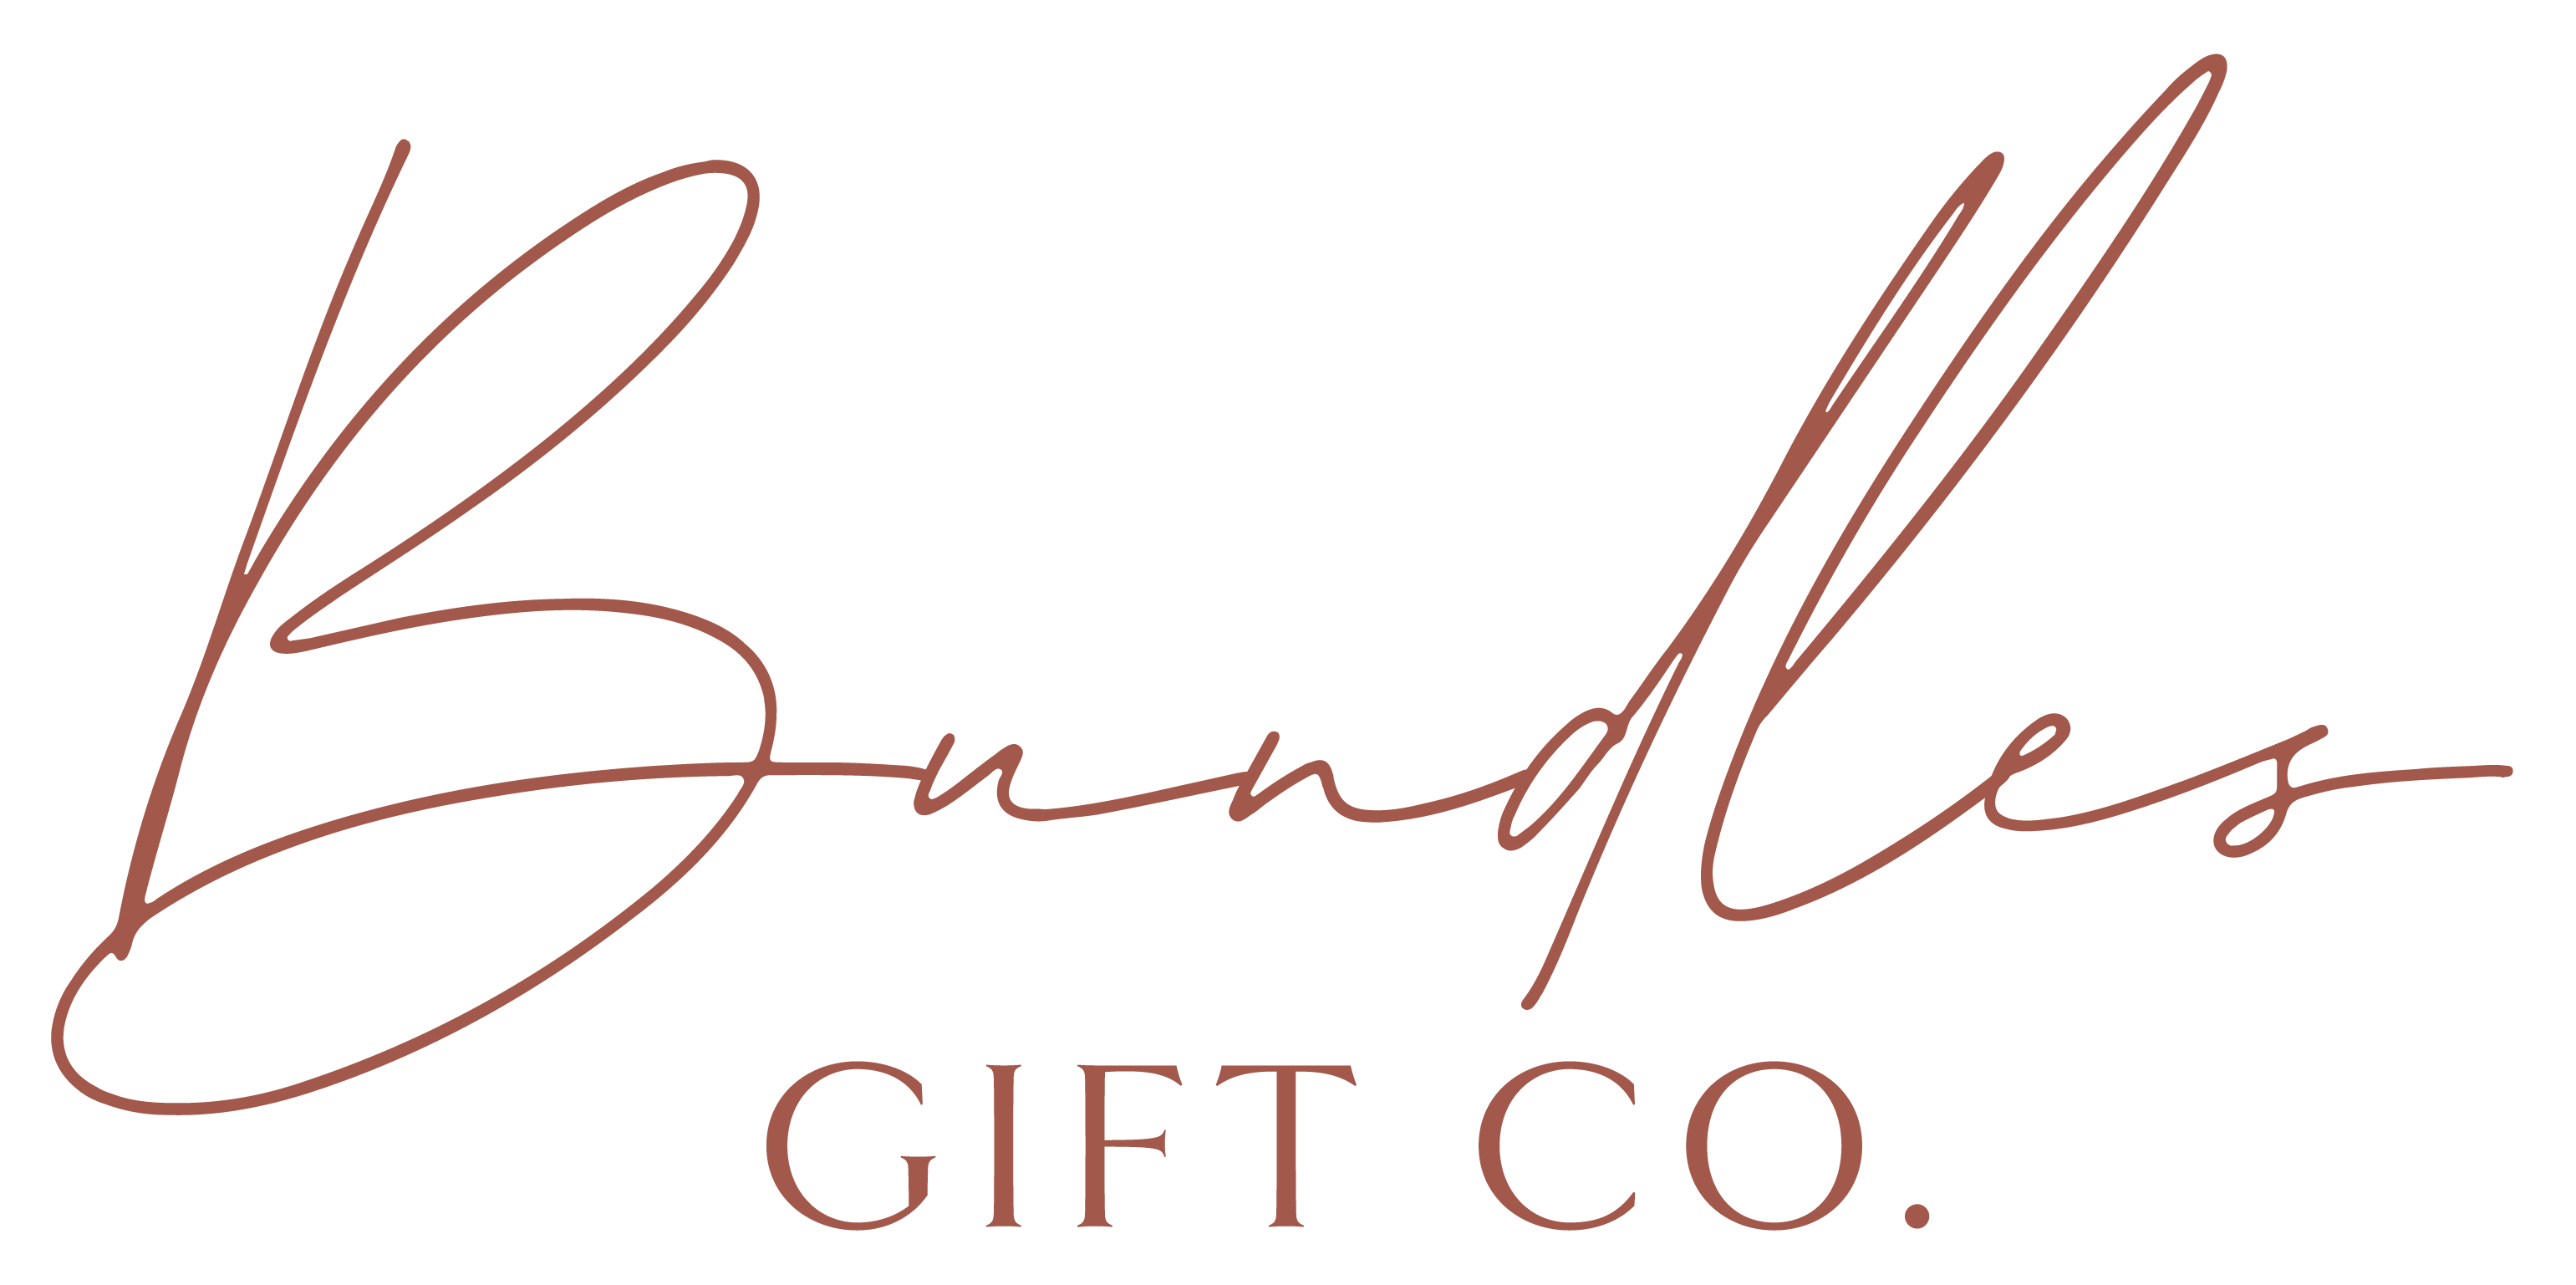 Bundles Gift Co.